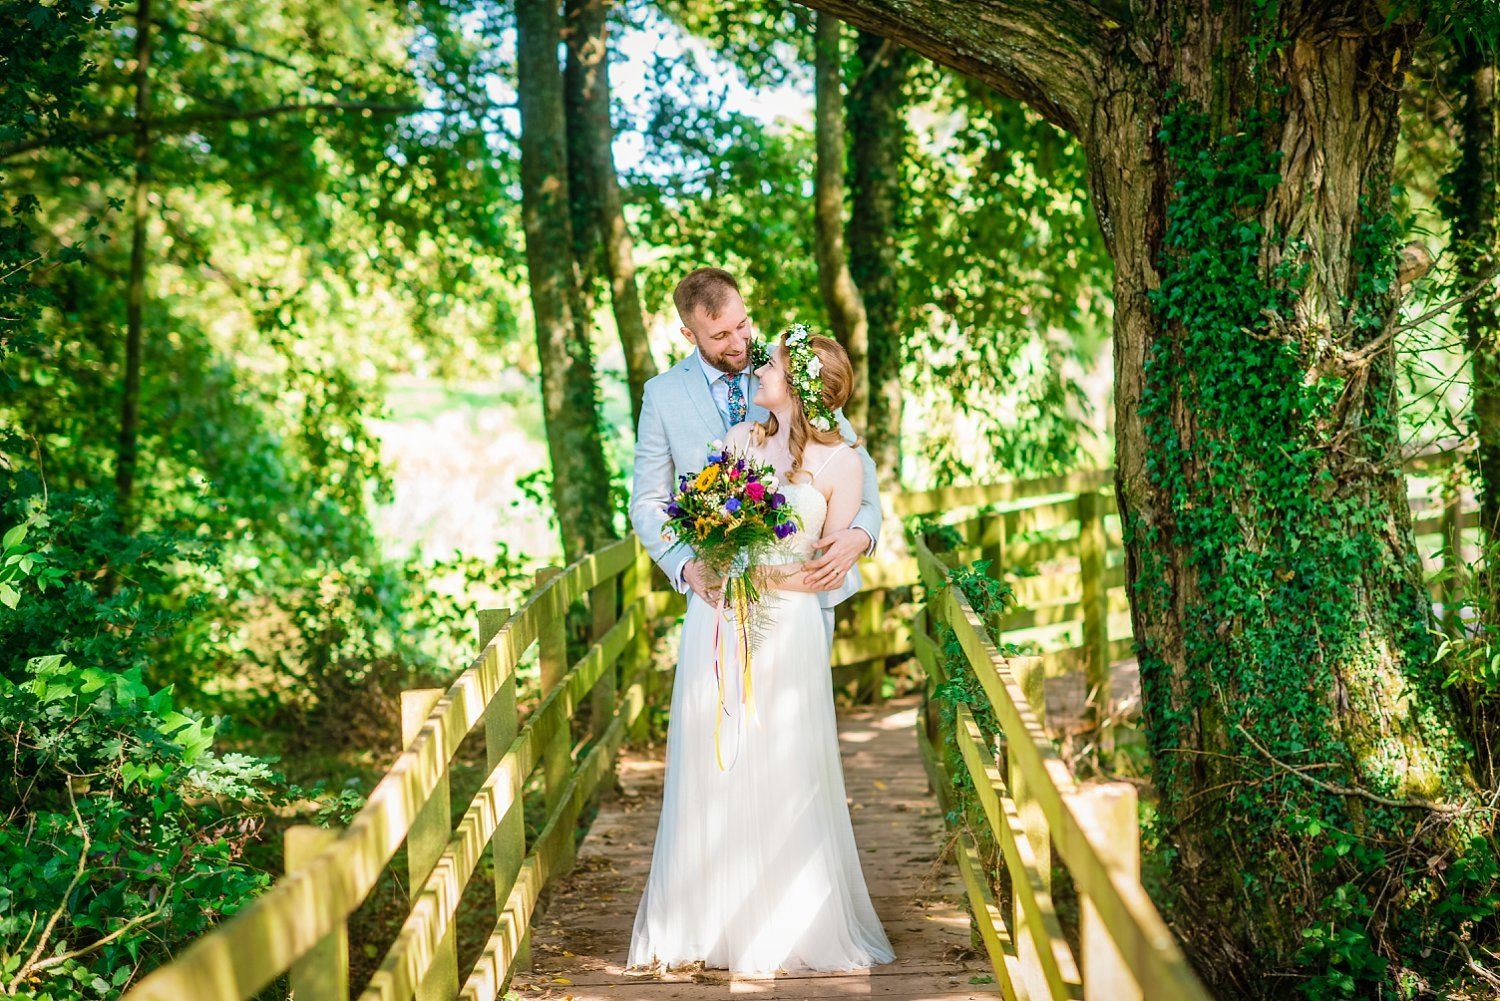 Farnham Wedding Photographer - groom is cuddling bride from behind, they are looking at each other. they are standing on the wooden bridge